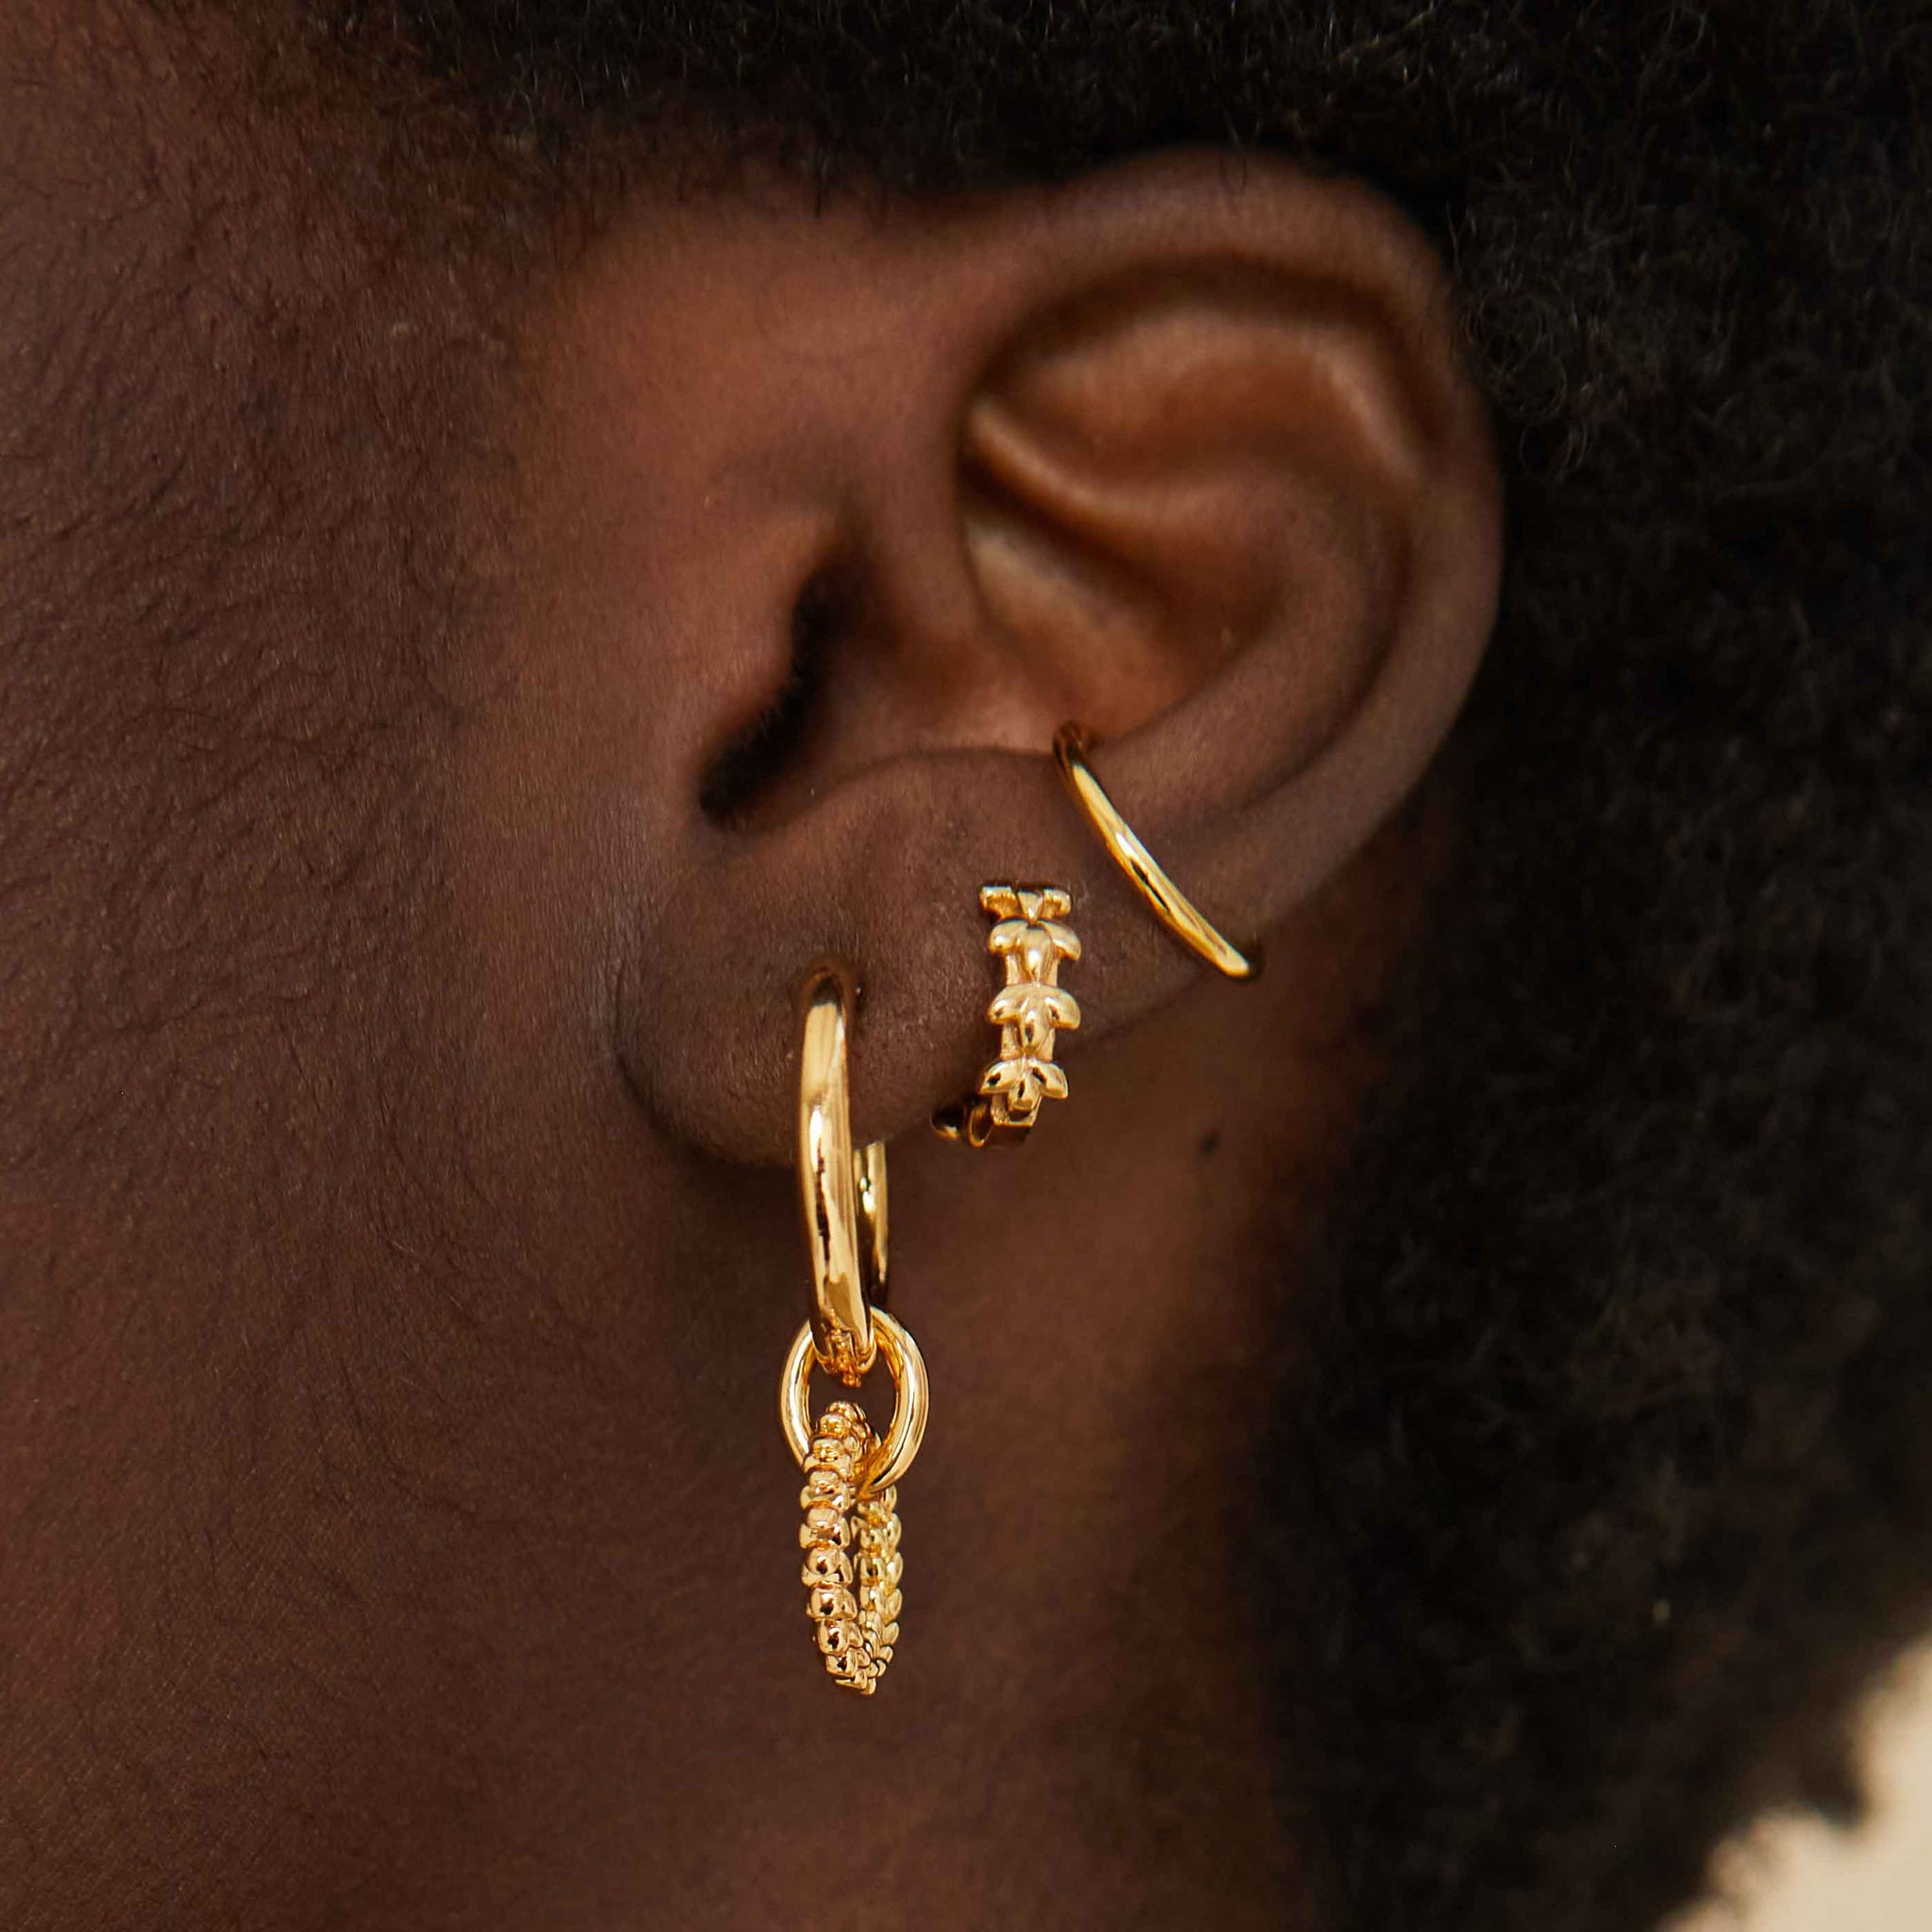 Basic Ear Cuff in Gold worn